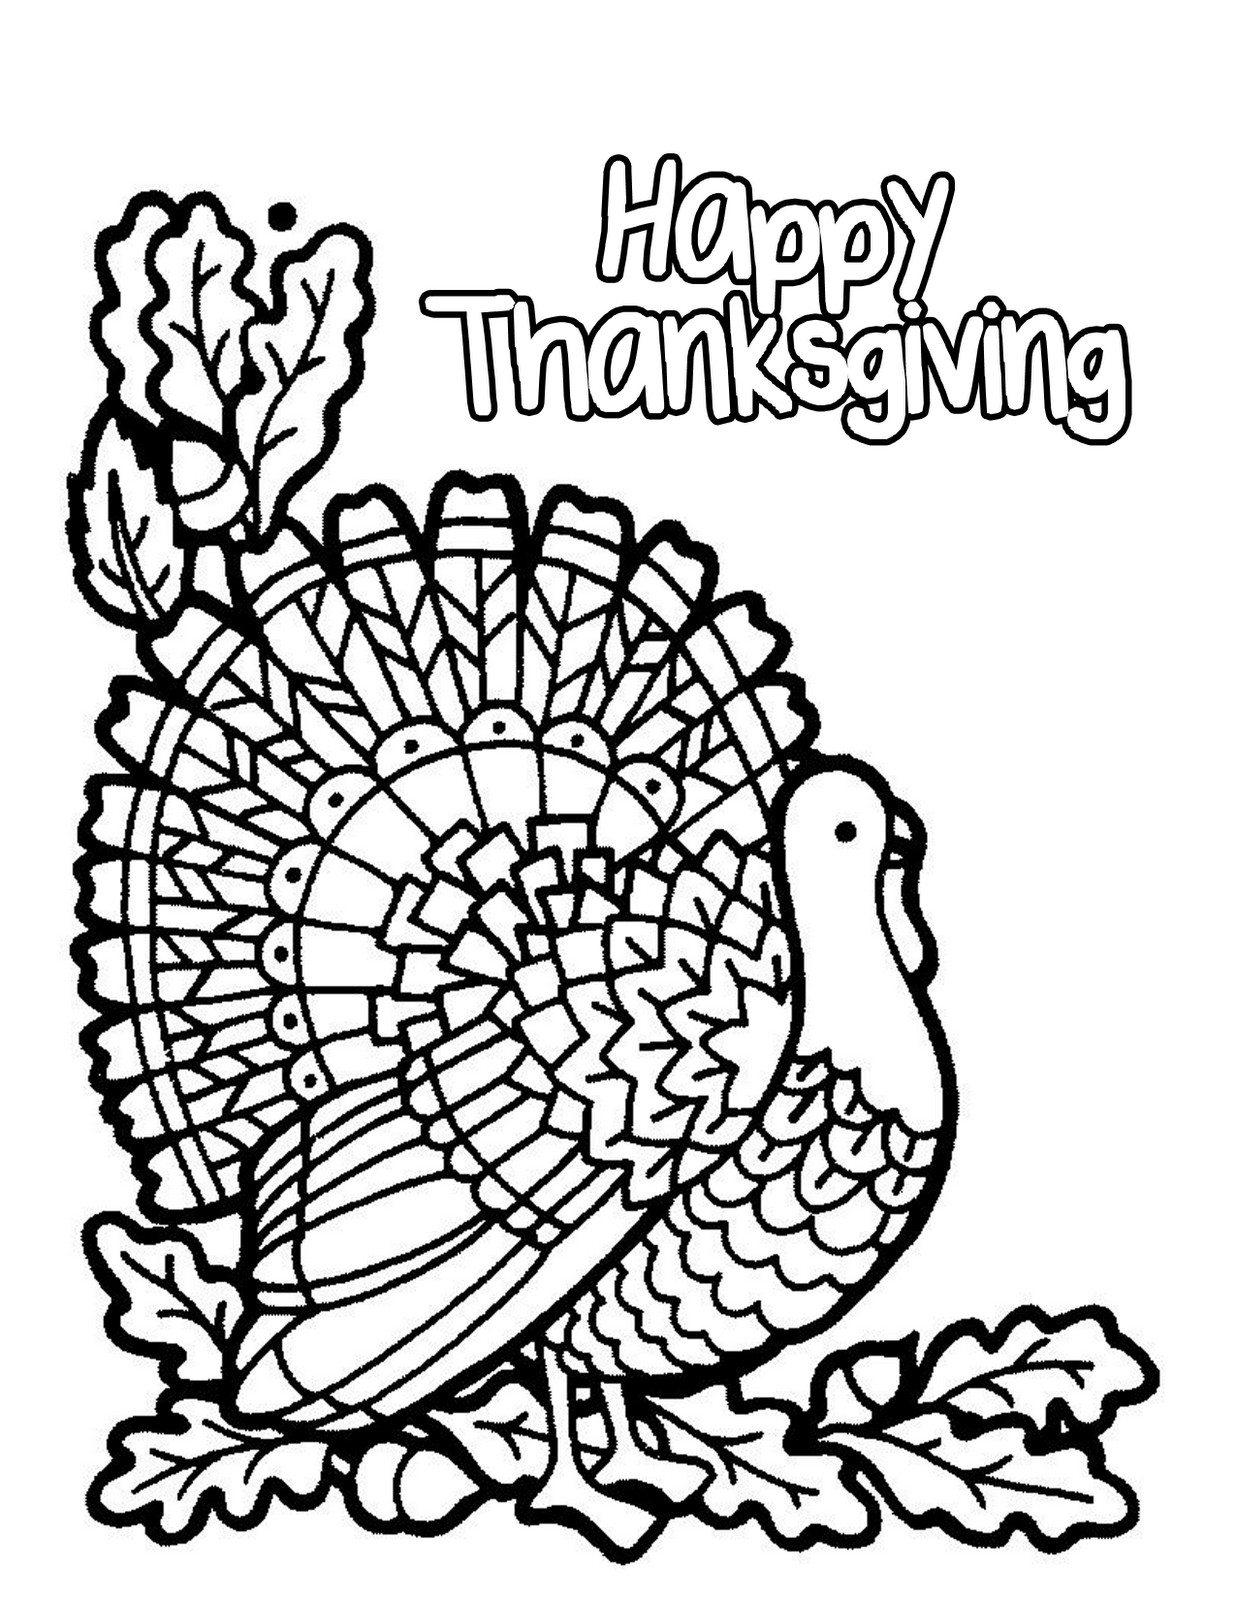 printable coloring pages for thanksgiving - photo#9